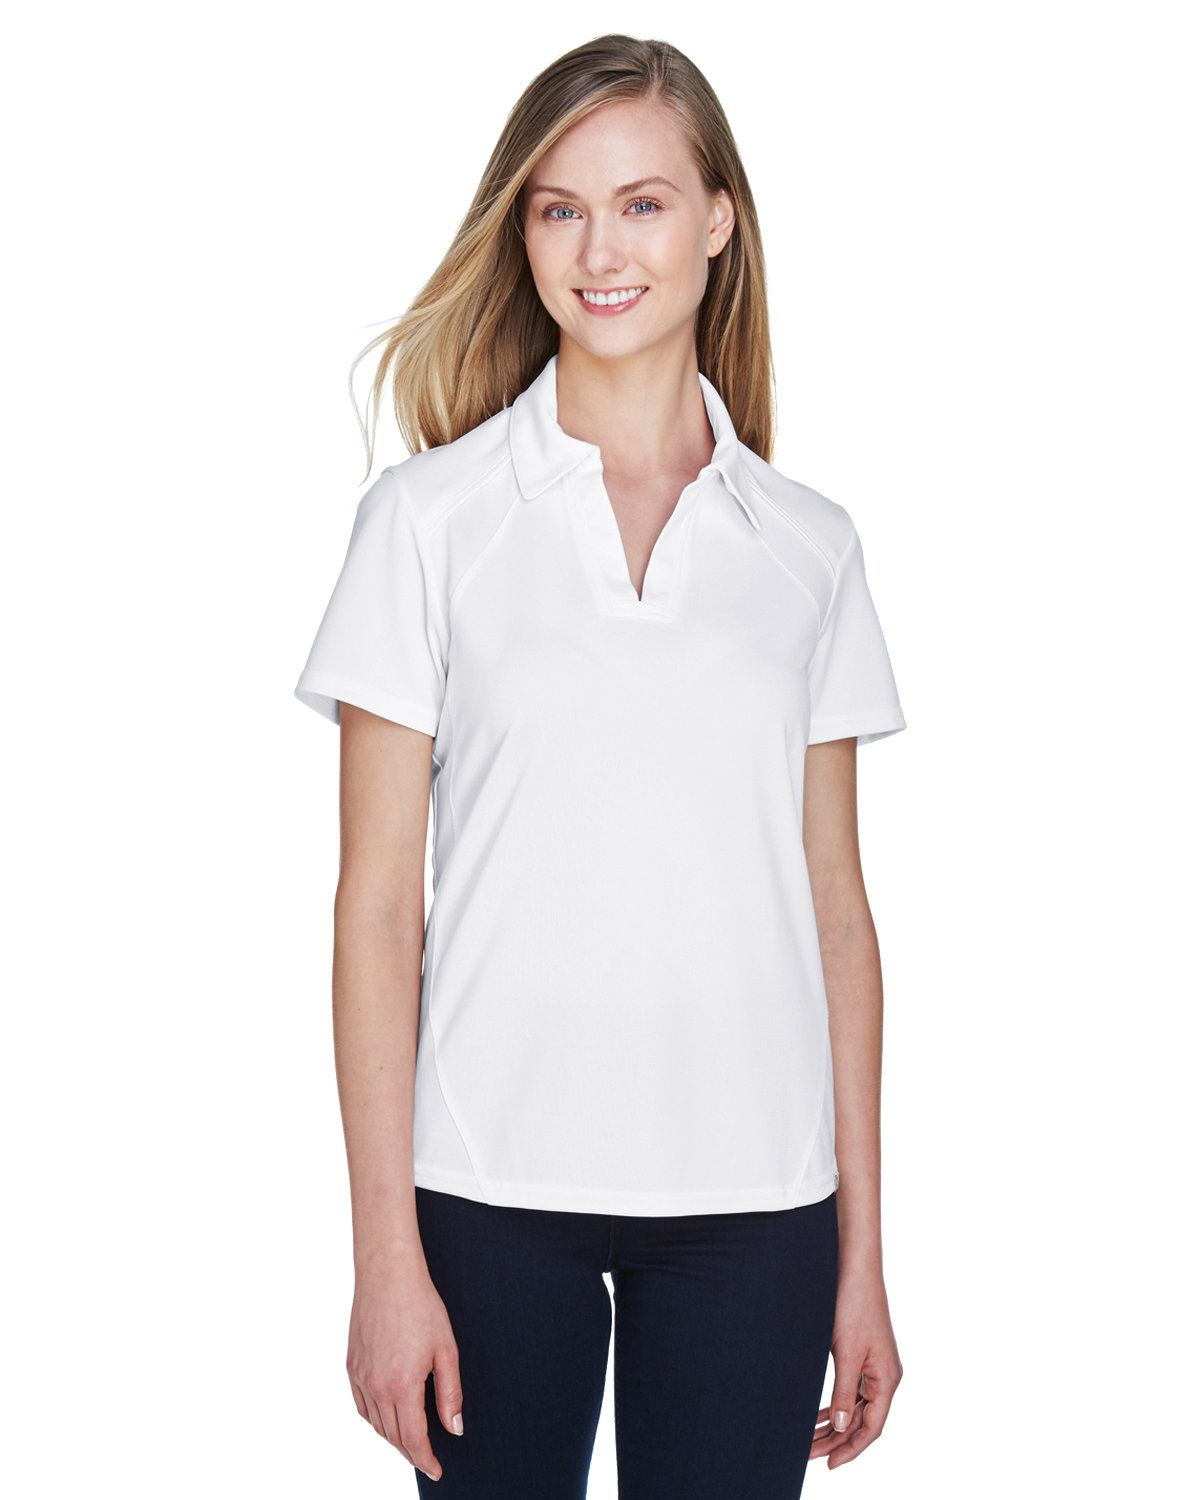 North End Ladies' Recycled Polyester Performance Piqué Polo WHITE